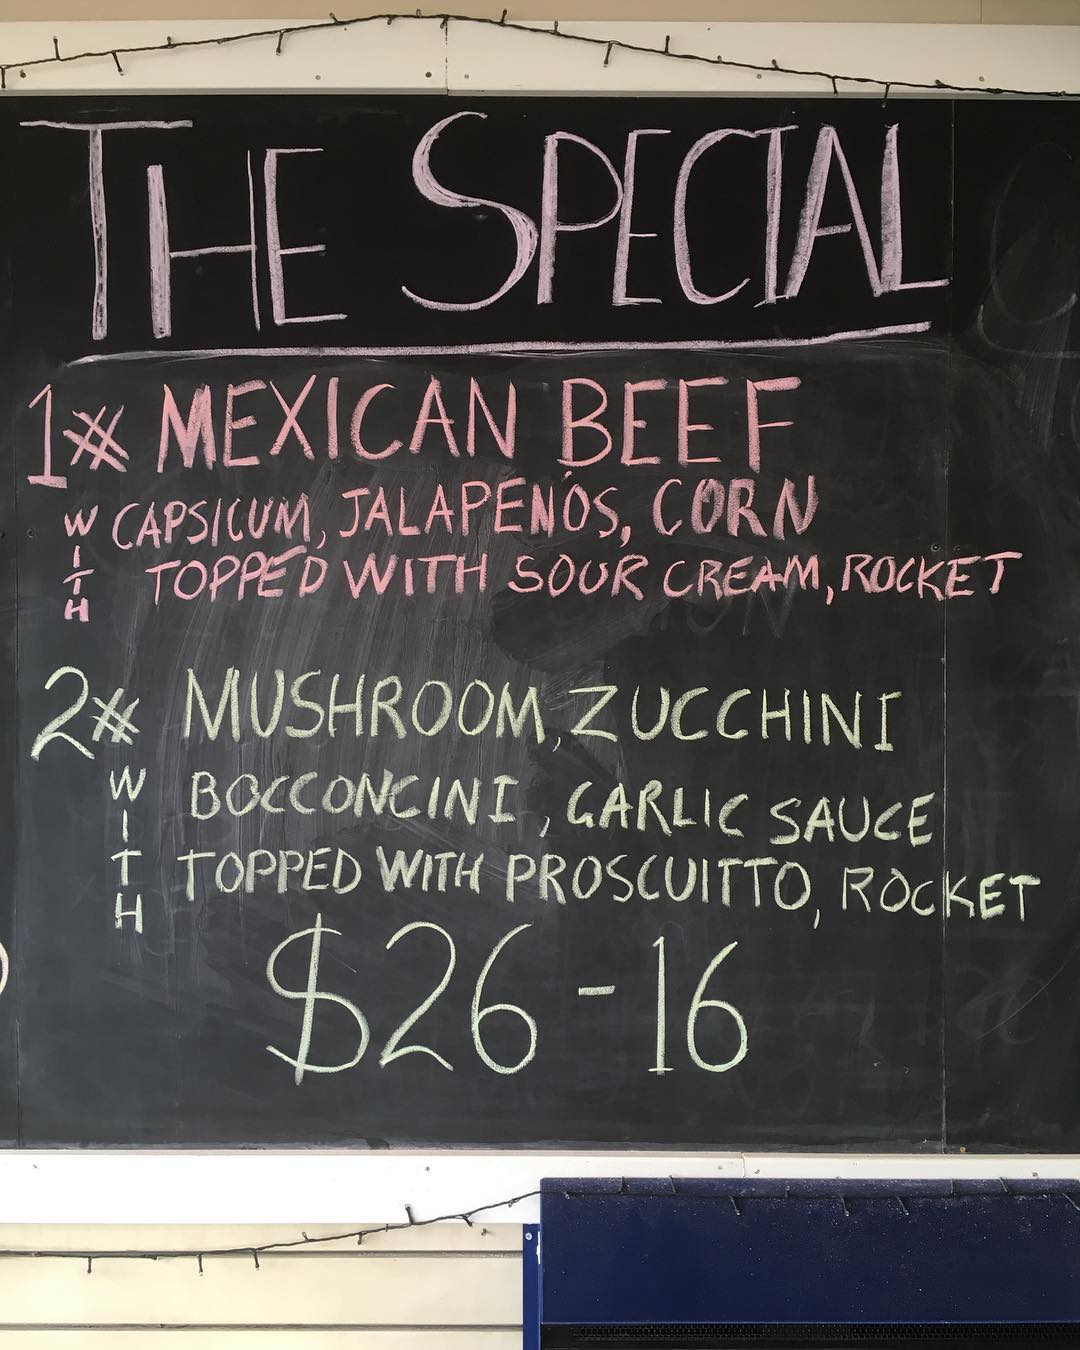 Two specials tonight. Yum! #theviewpizzaspecial  Don't forget to order early due to the girls night out. #hardysbay #killcare #proscuitto #zucchini